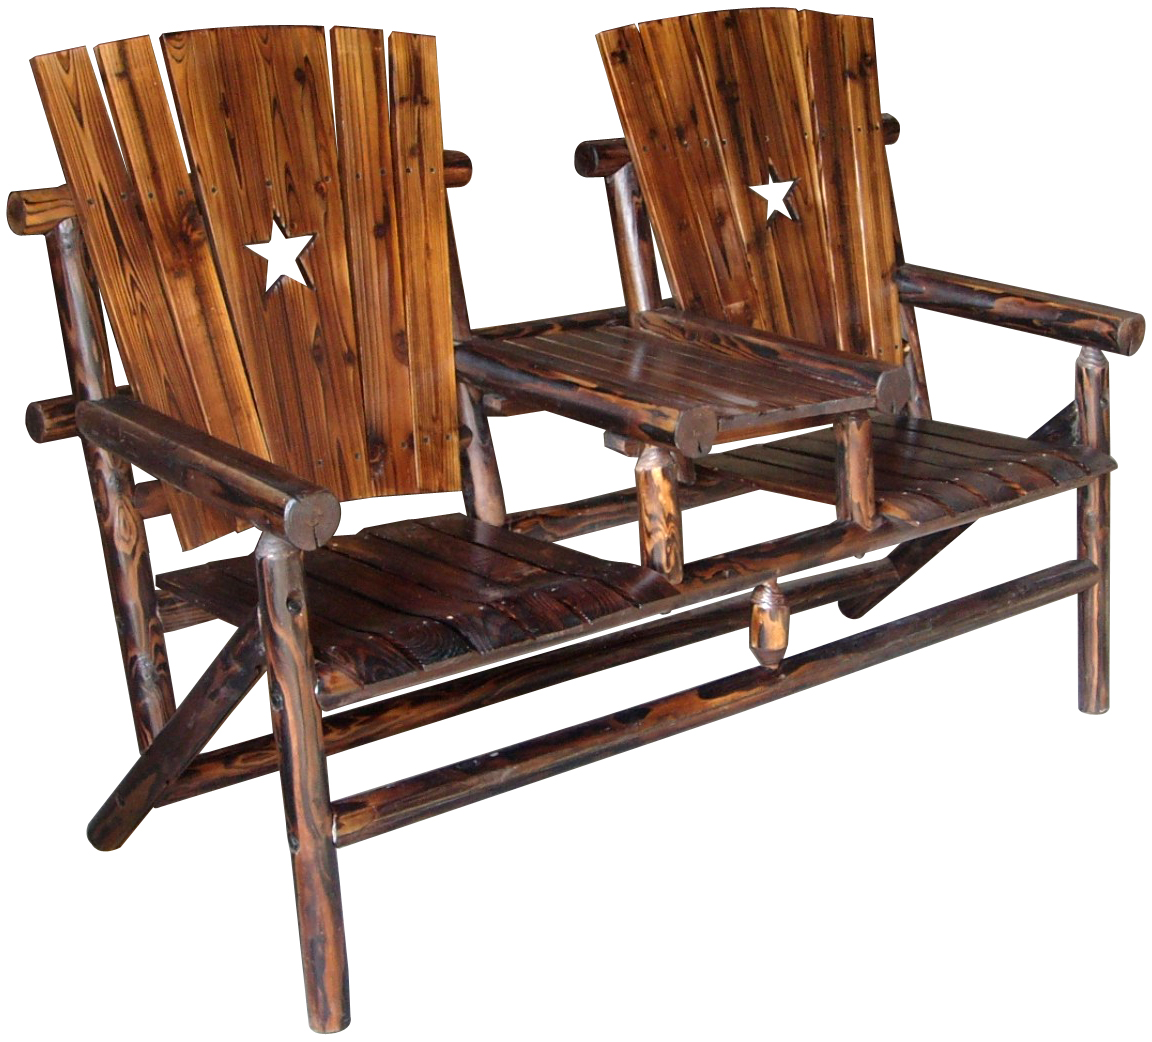 Texas Double Bench and Tray with the Texas Lone Star